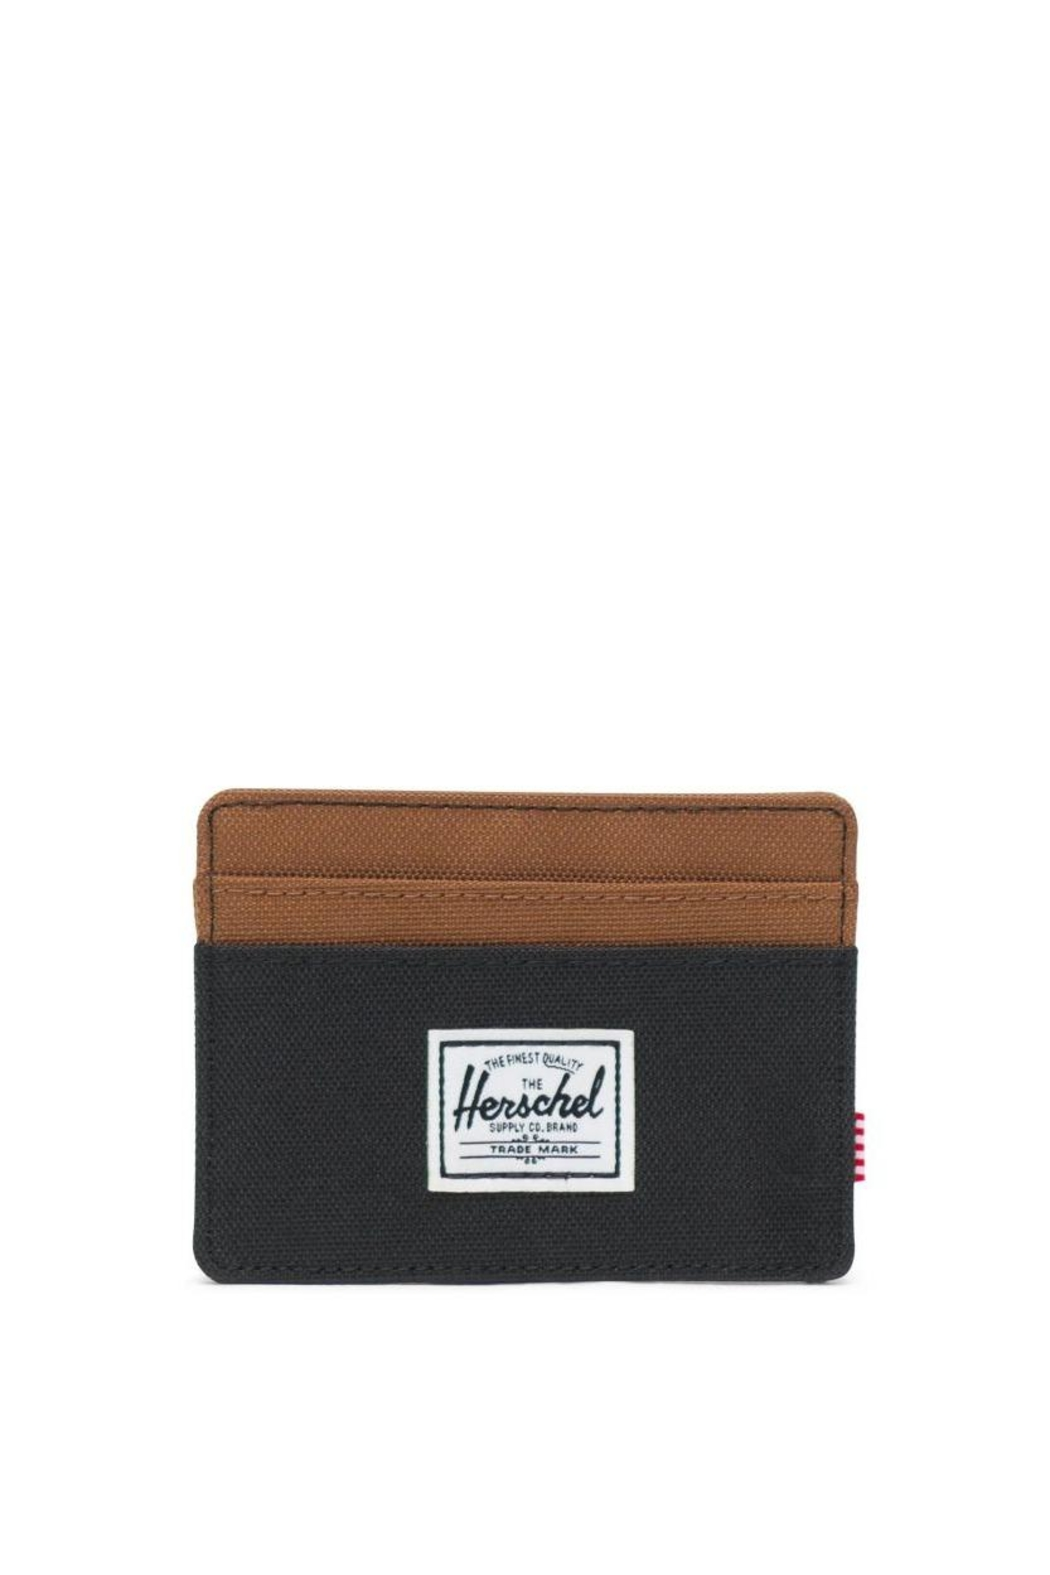 Herschel Supply Co. Cardholder Wallet - Main Image